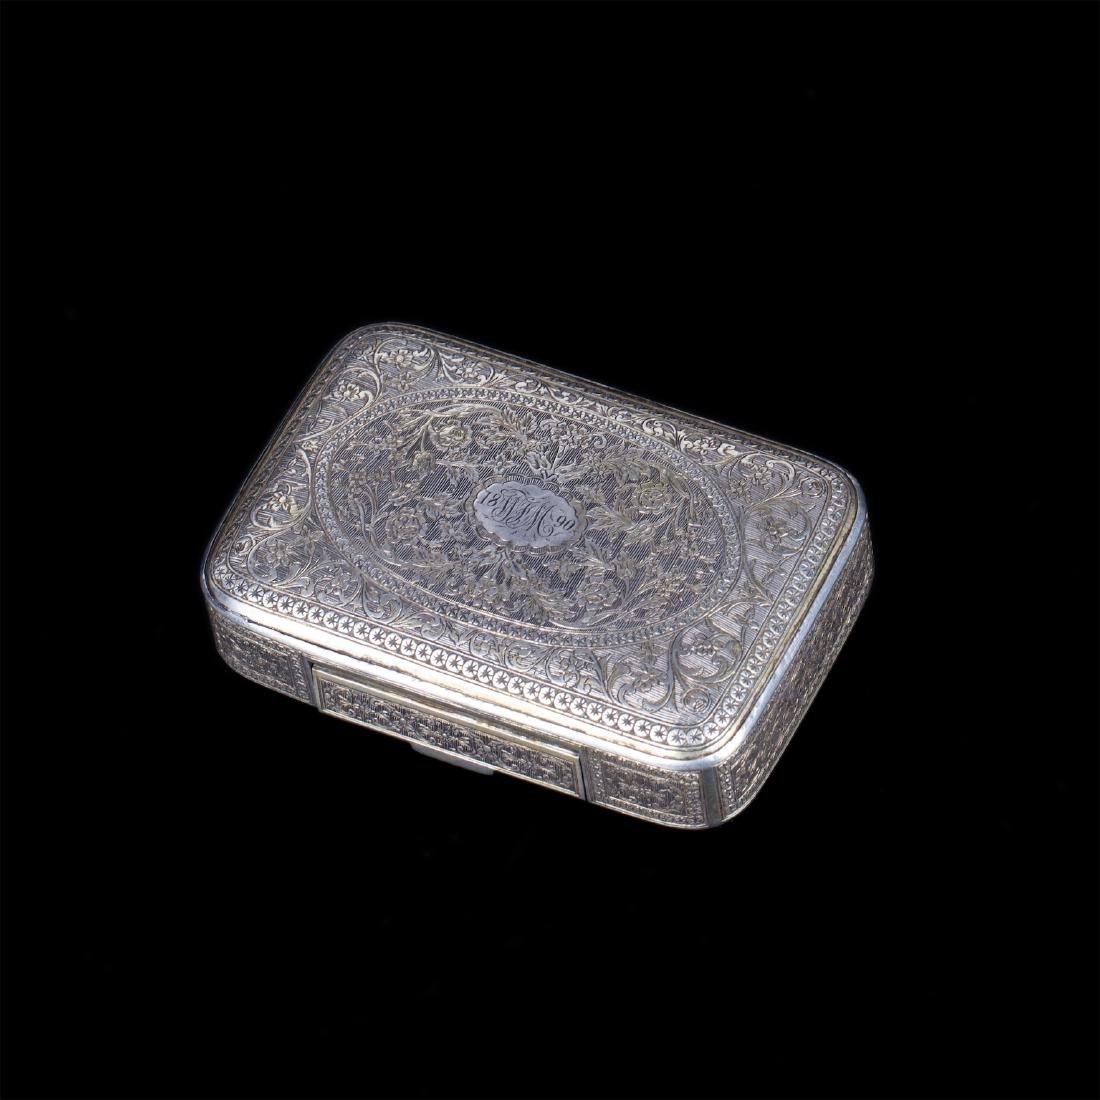 Antique Turkish silver cigarette case with a floral